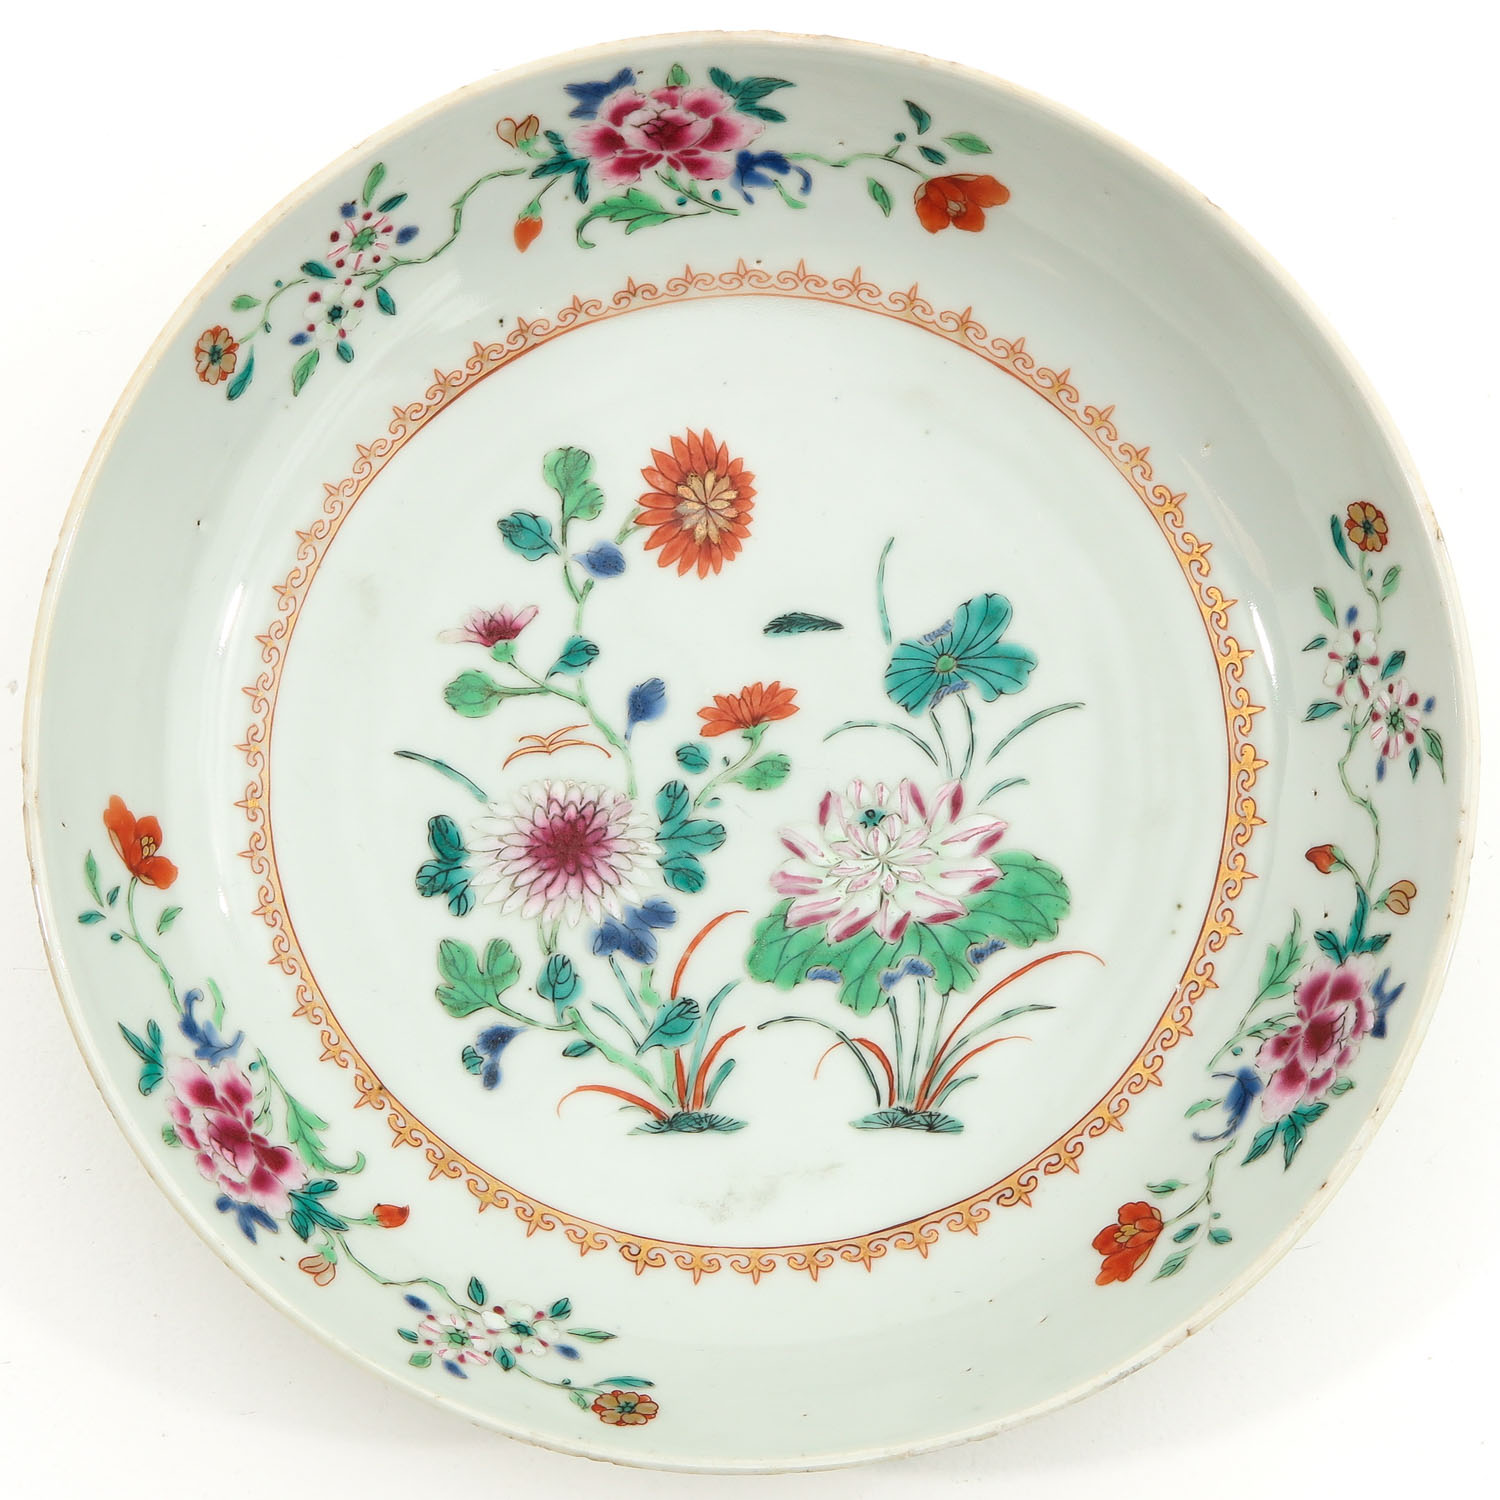 A Collection of 3 Famille Rose Plates - Image 5 of 10